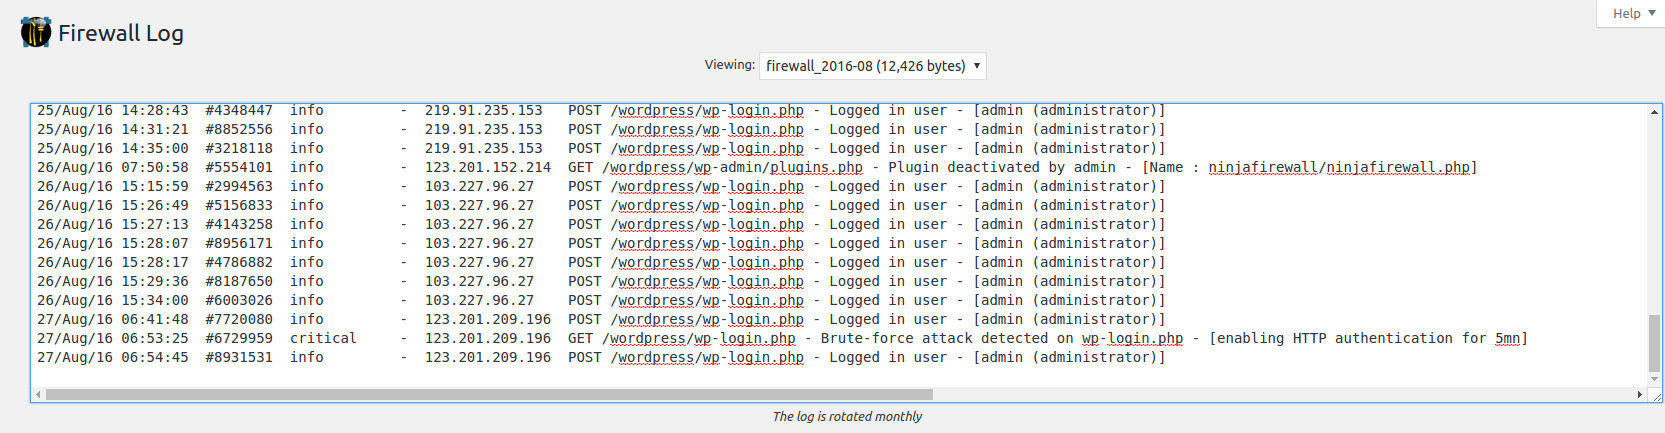 the Firewall Log for Brute Force Attacks